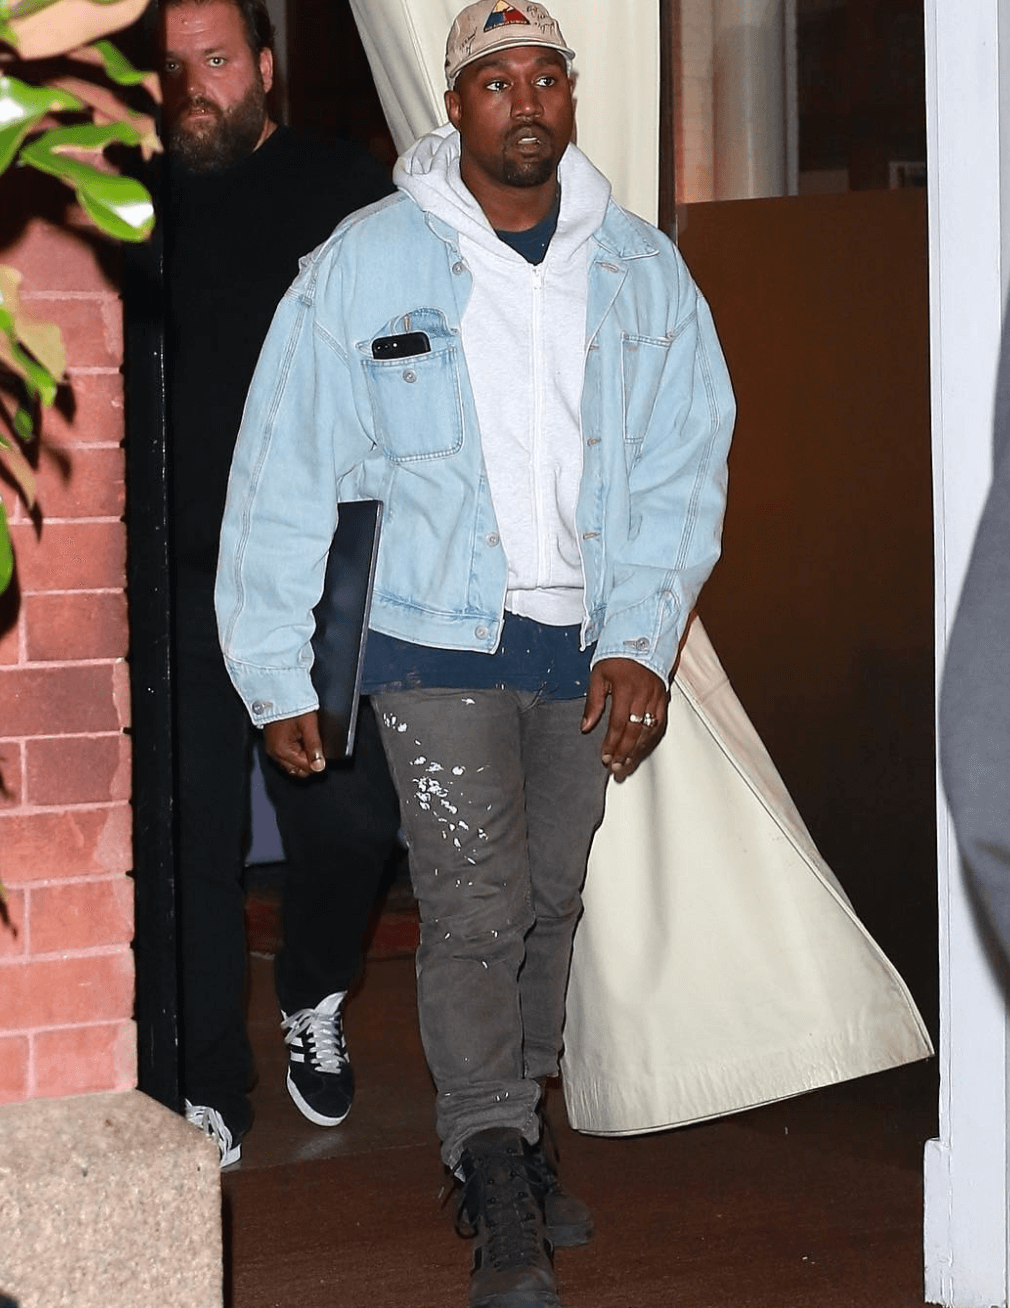 Kanye West in the Yeezy Boots